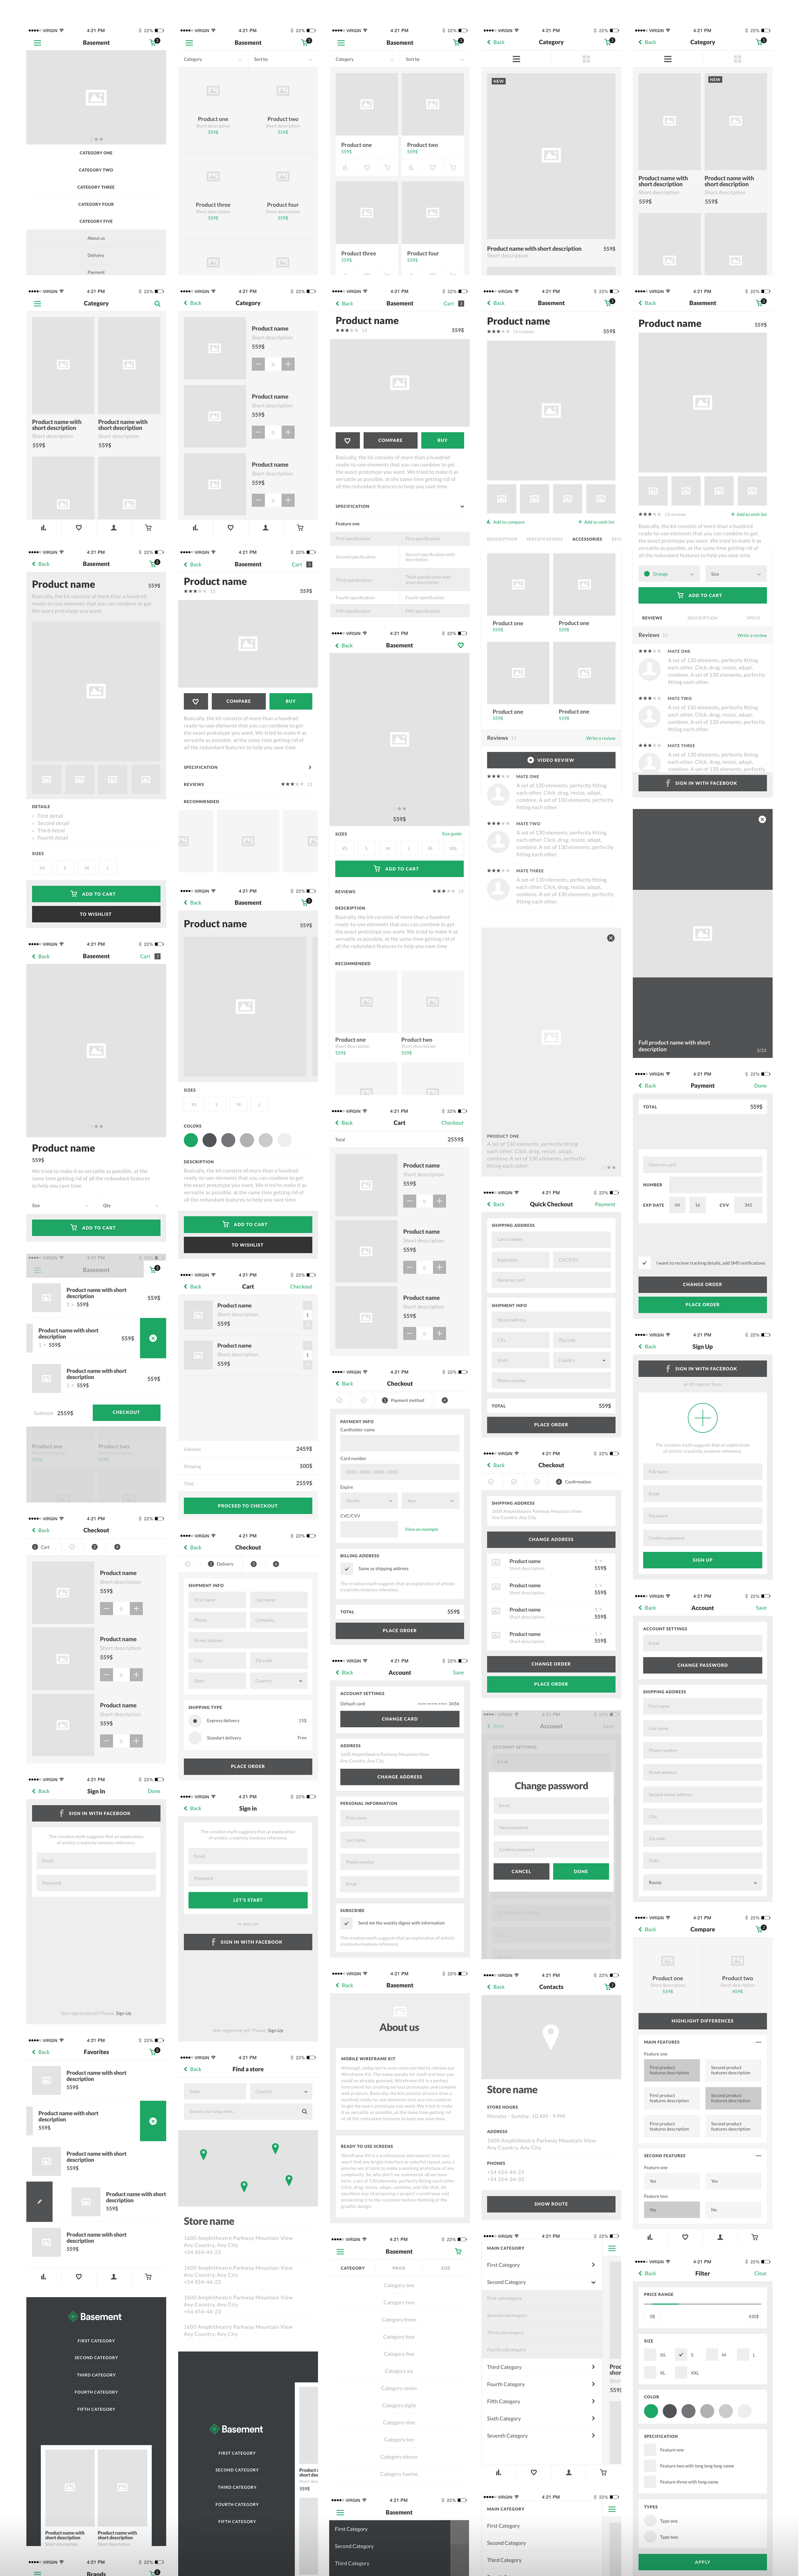 Ecommerce  50+ expertly crafted screens in five categories: Feed, Product Cards, Cart/Checkout, Navigation, Miscellaneous